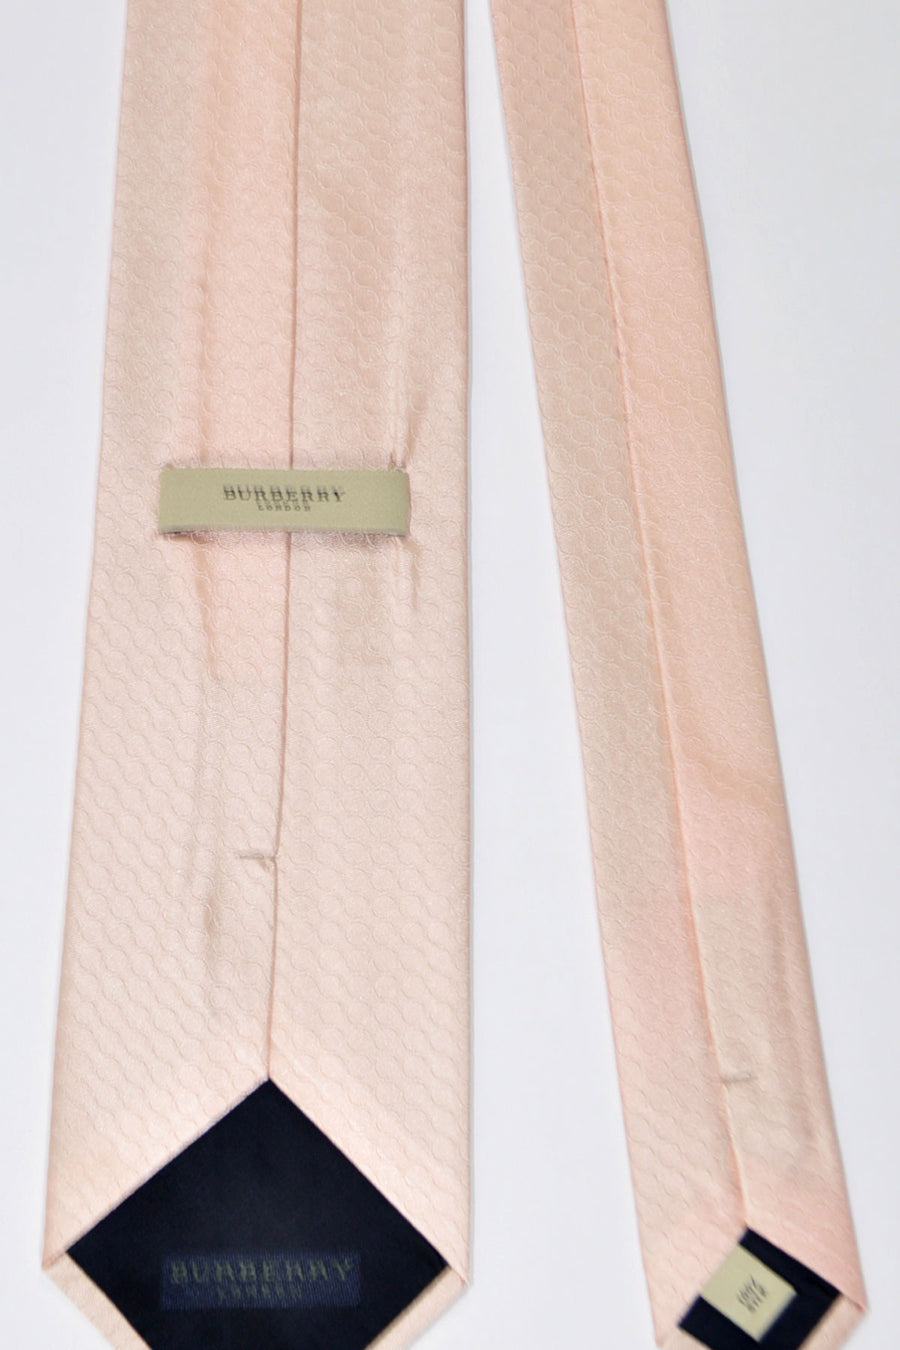 Burberry Tie Light Pink Circles - Wide Necktie